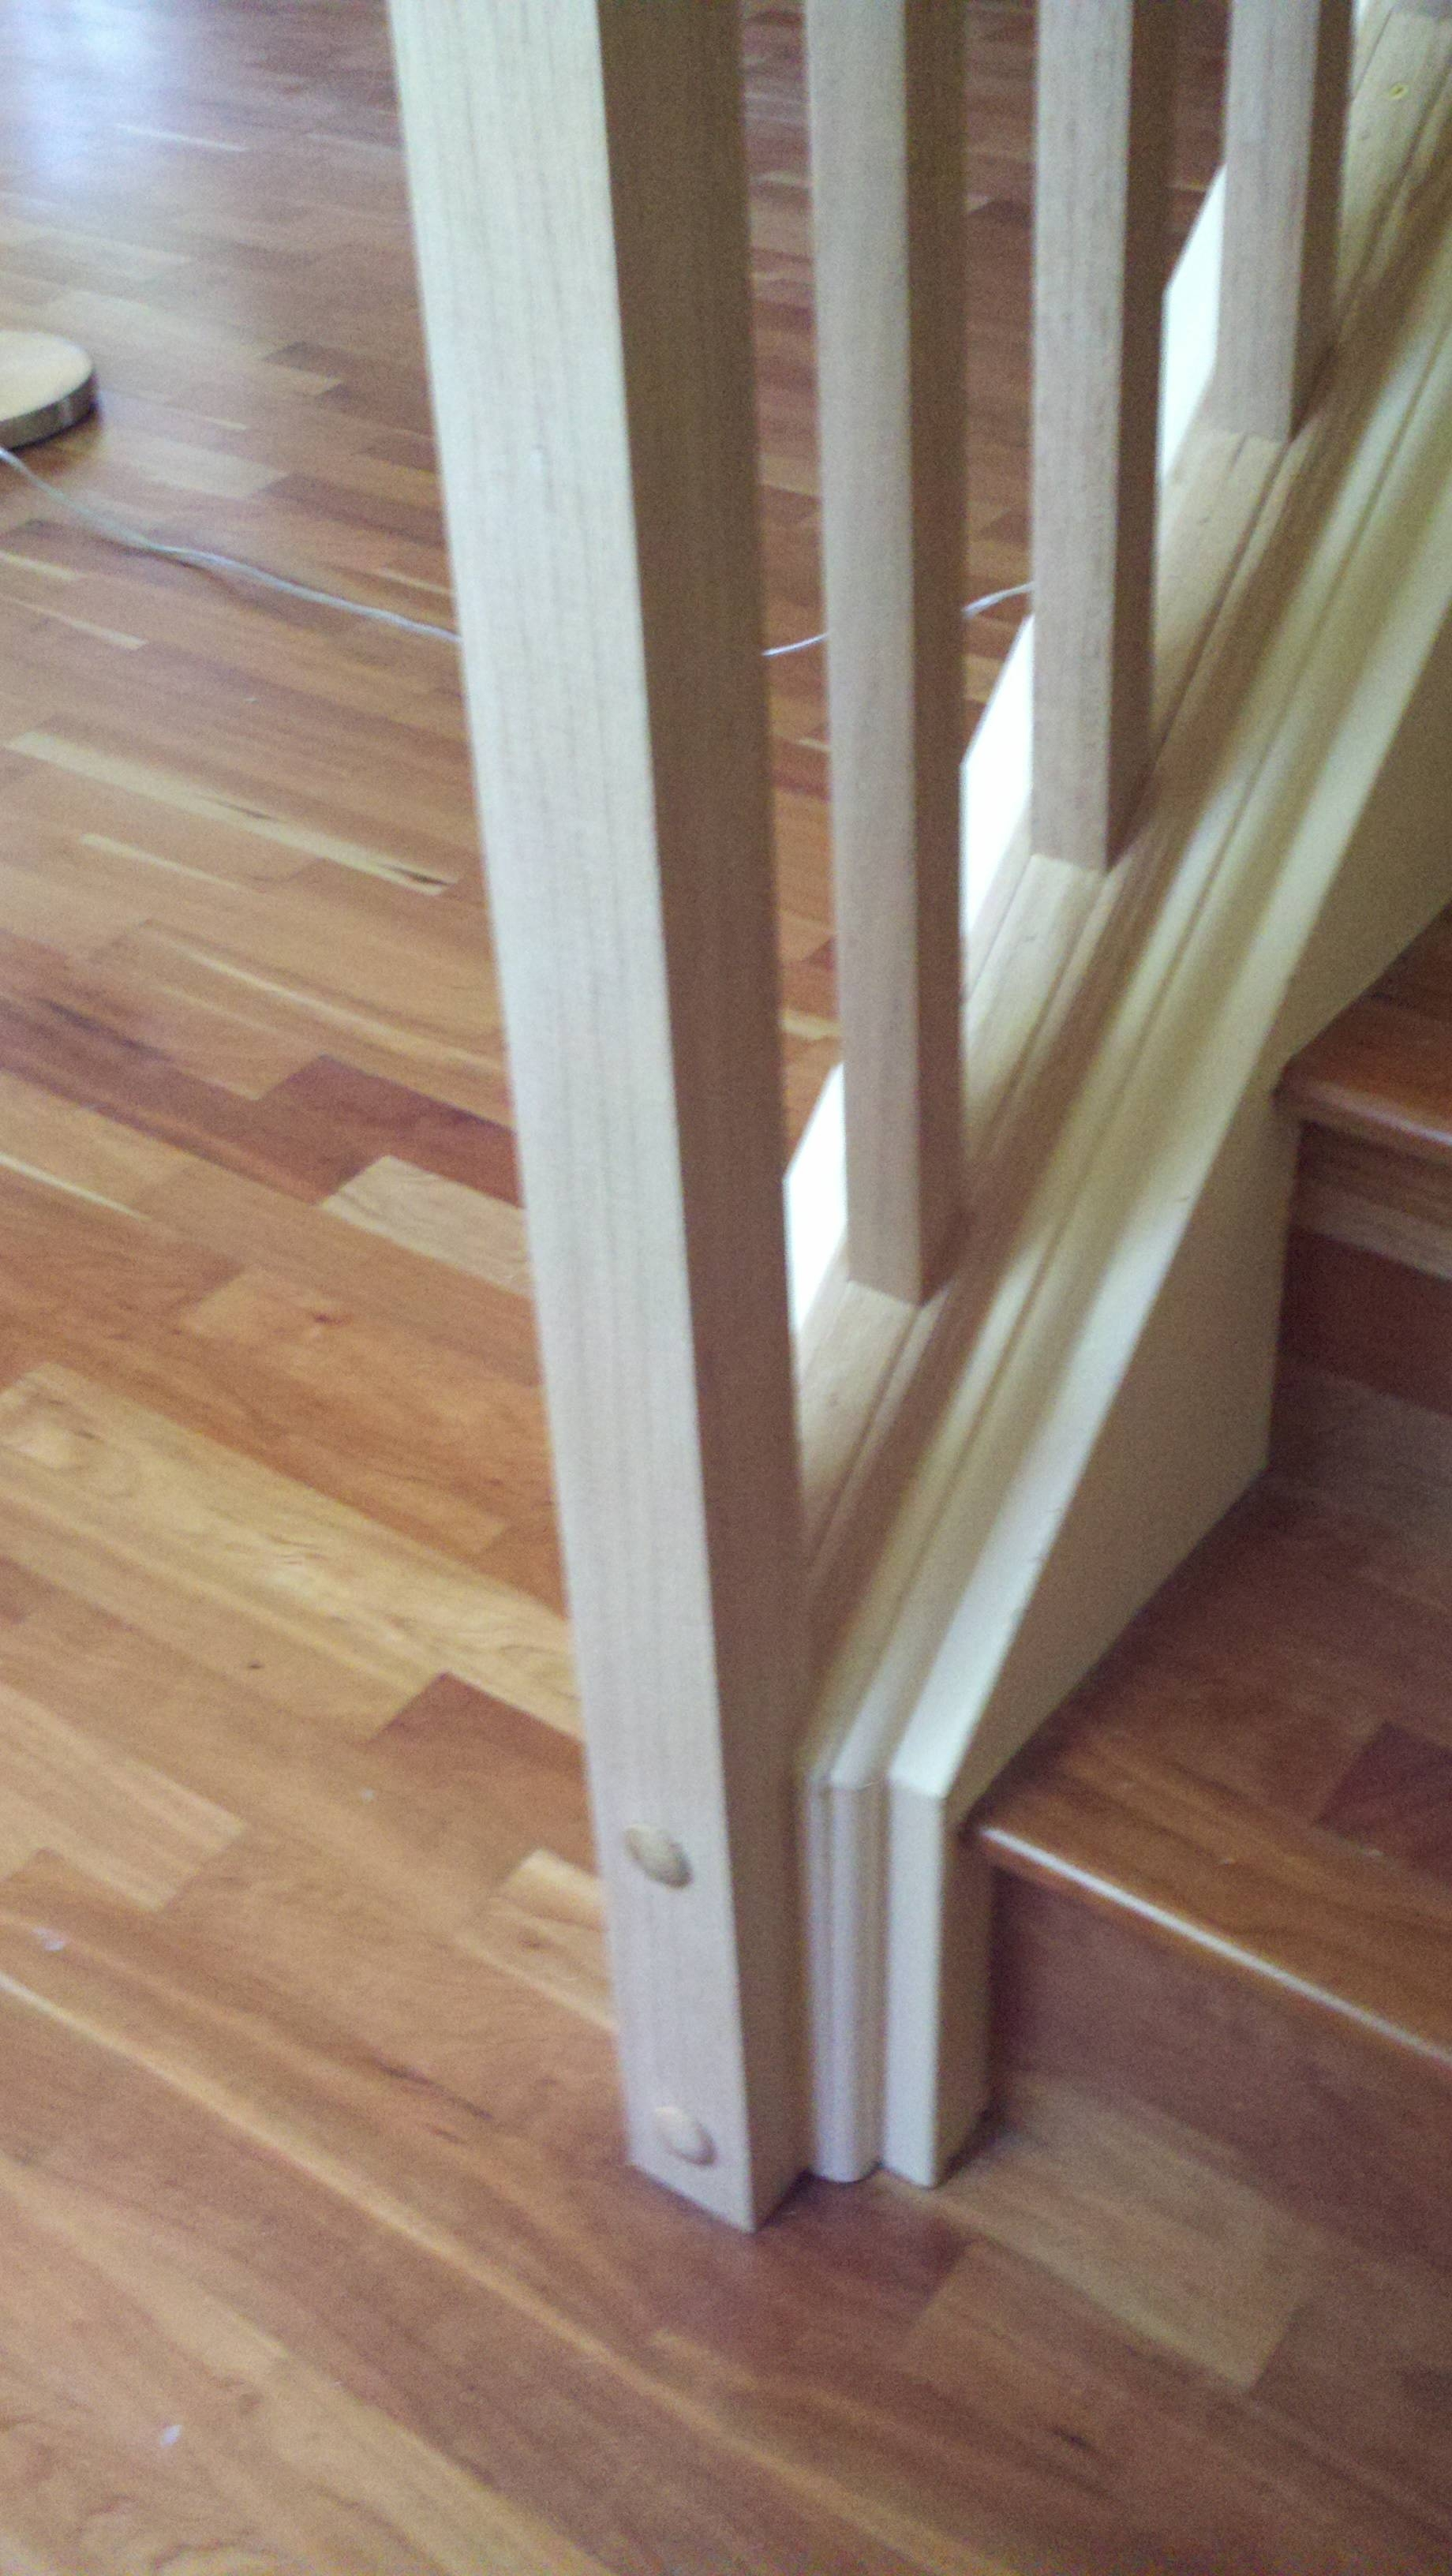 How Can I Set Up A Removable Stair Railing Home Improvement | Indoor Railings Home Depot | Wrought Iron | Barn Post Custom | Balusters | Wood Stair | Unique